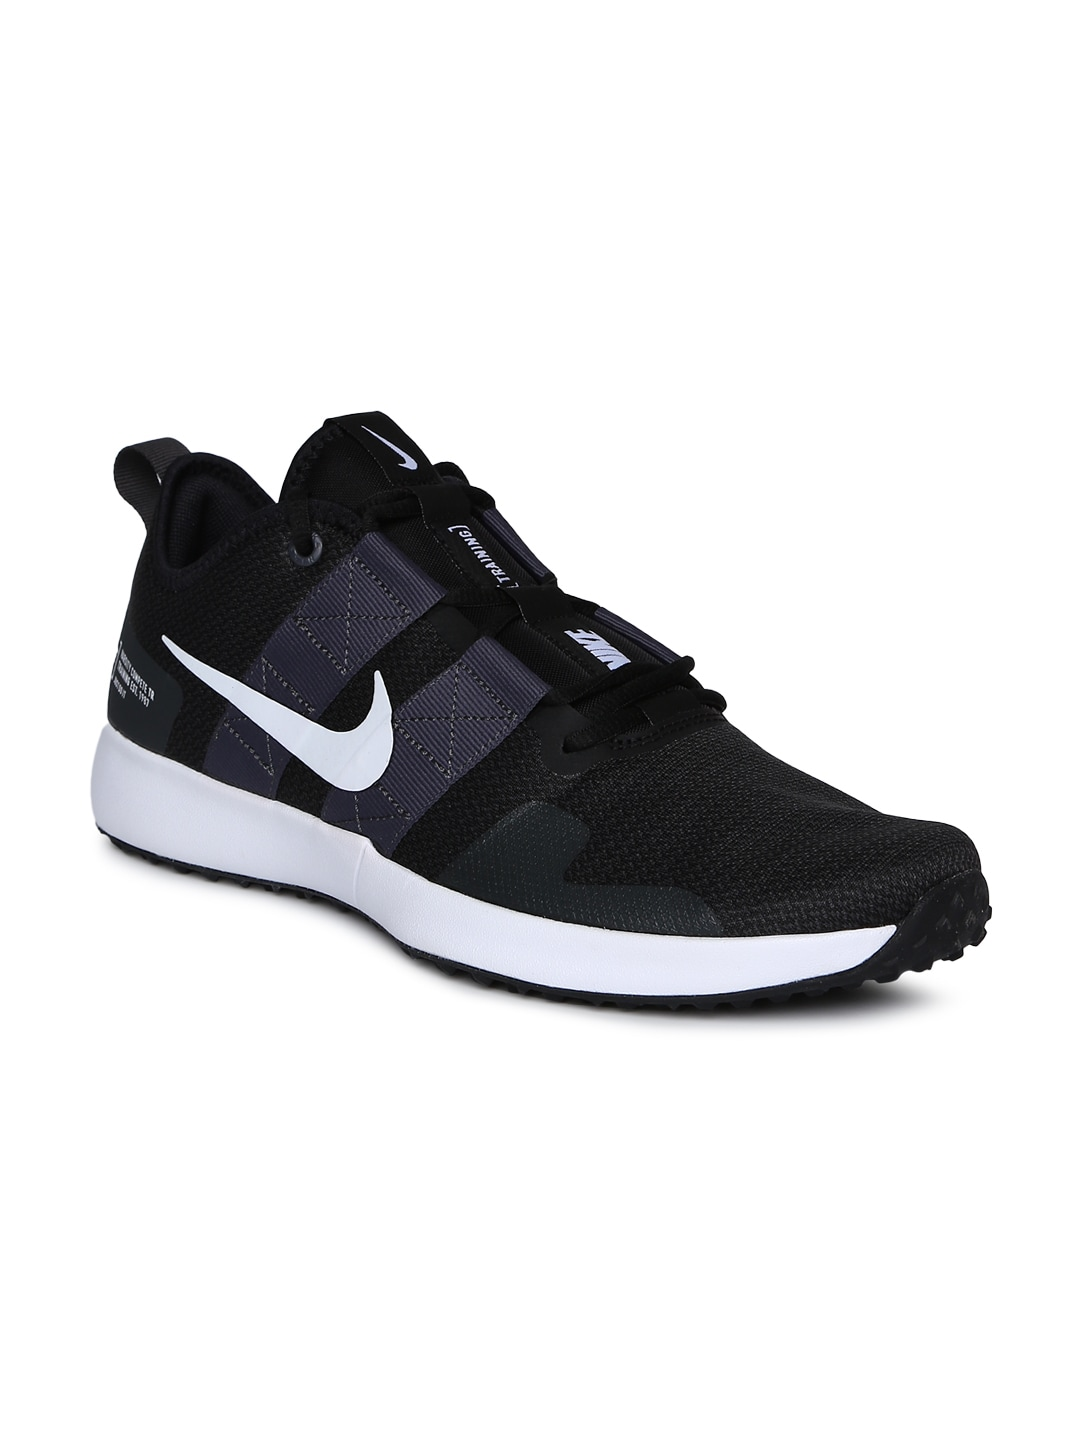 cheap for discount 5ff03 13365 Nike Training Shoes - Buy Nike Training Shoes For Men   Women in India